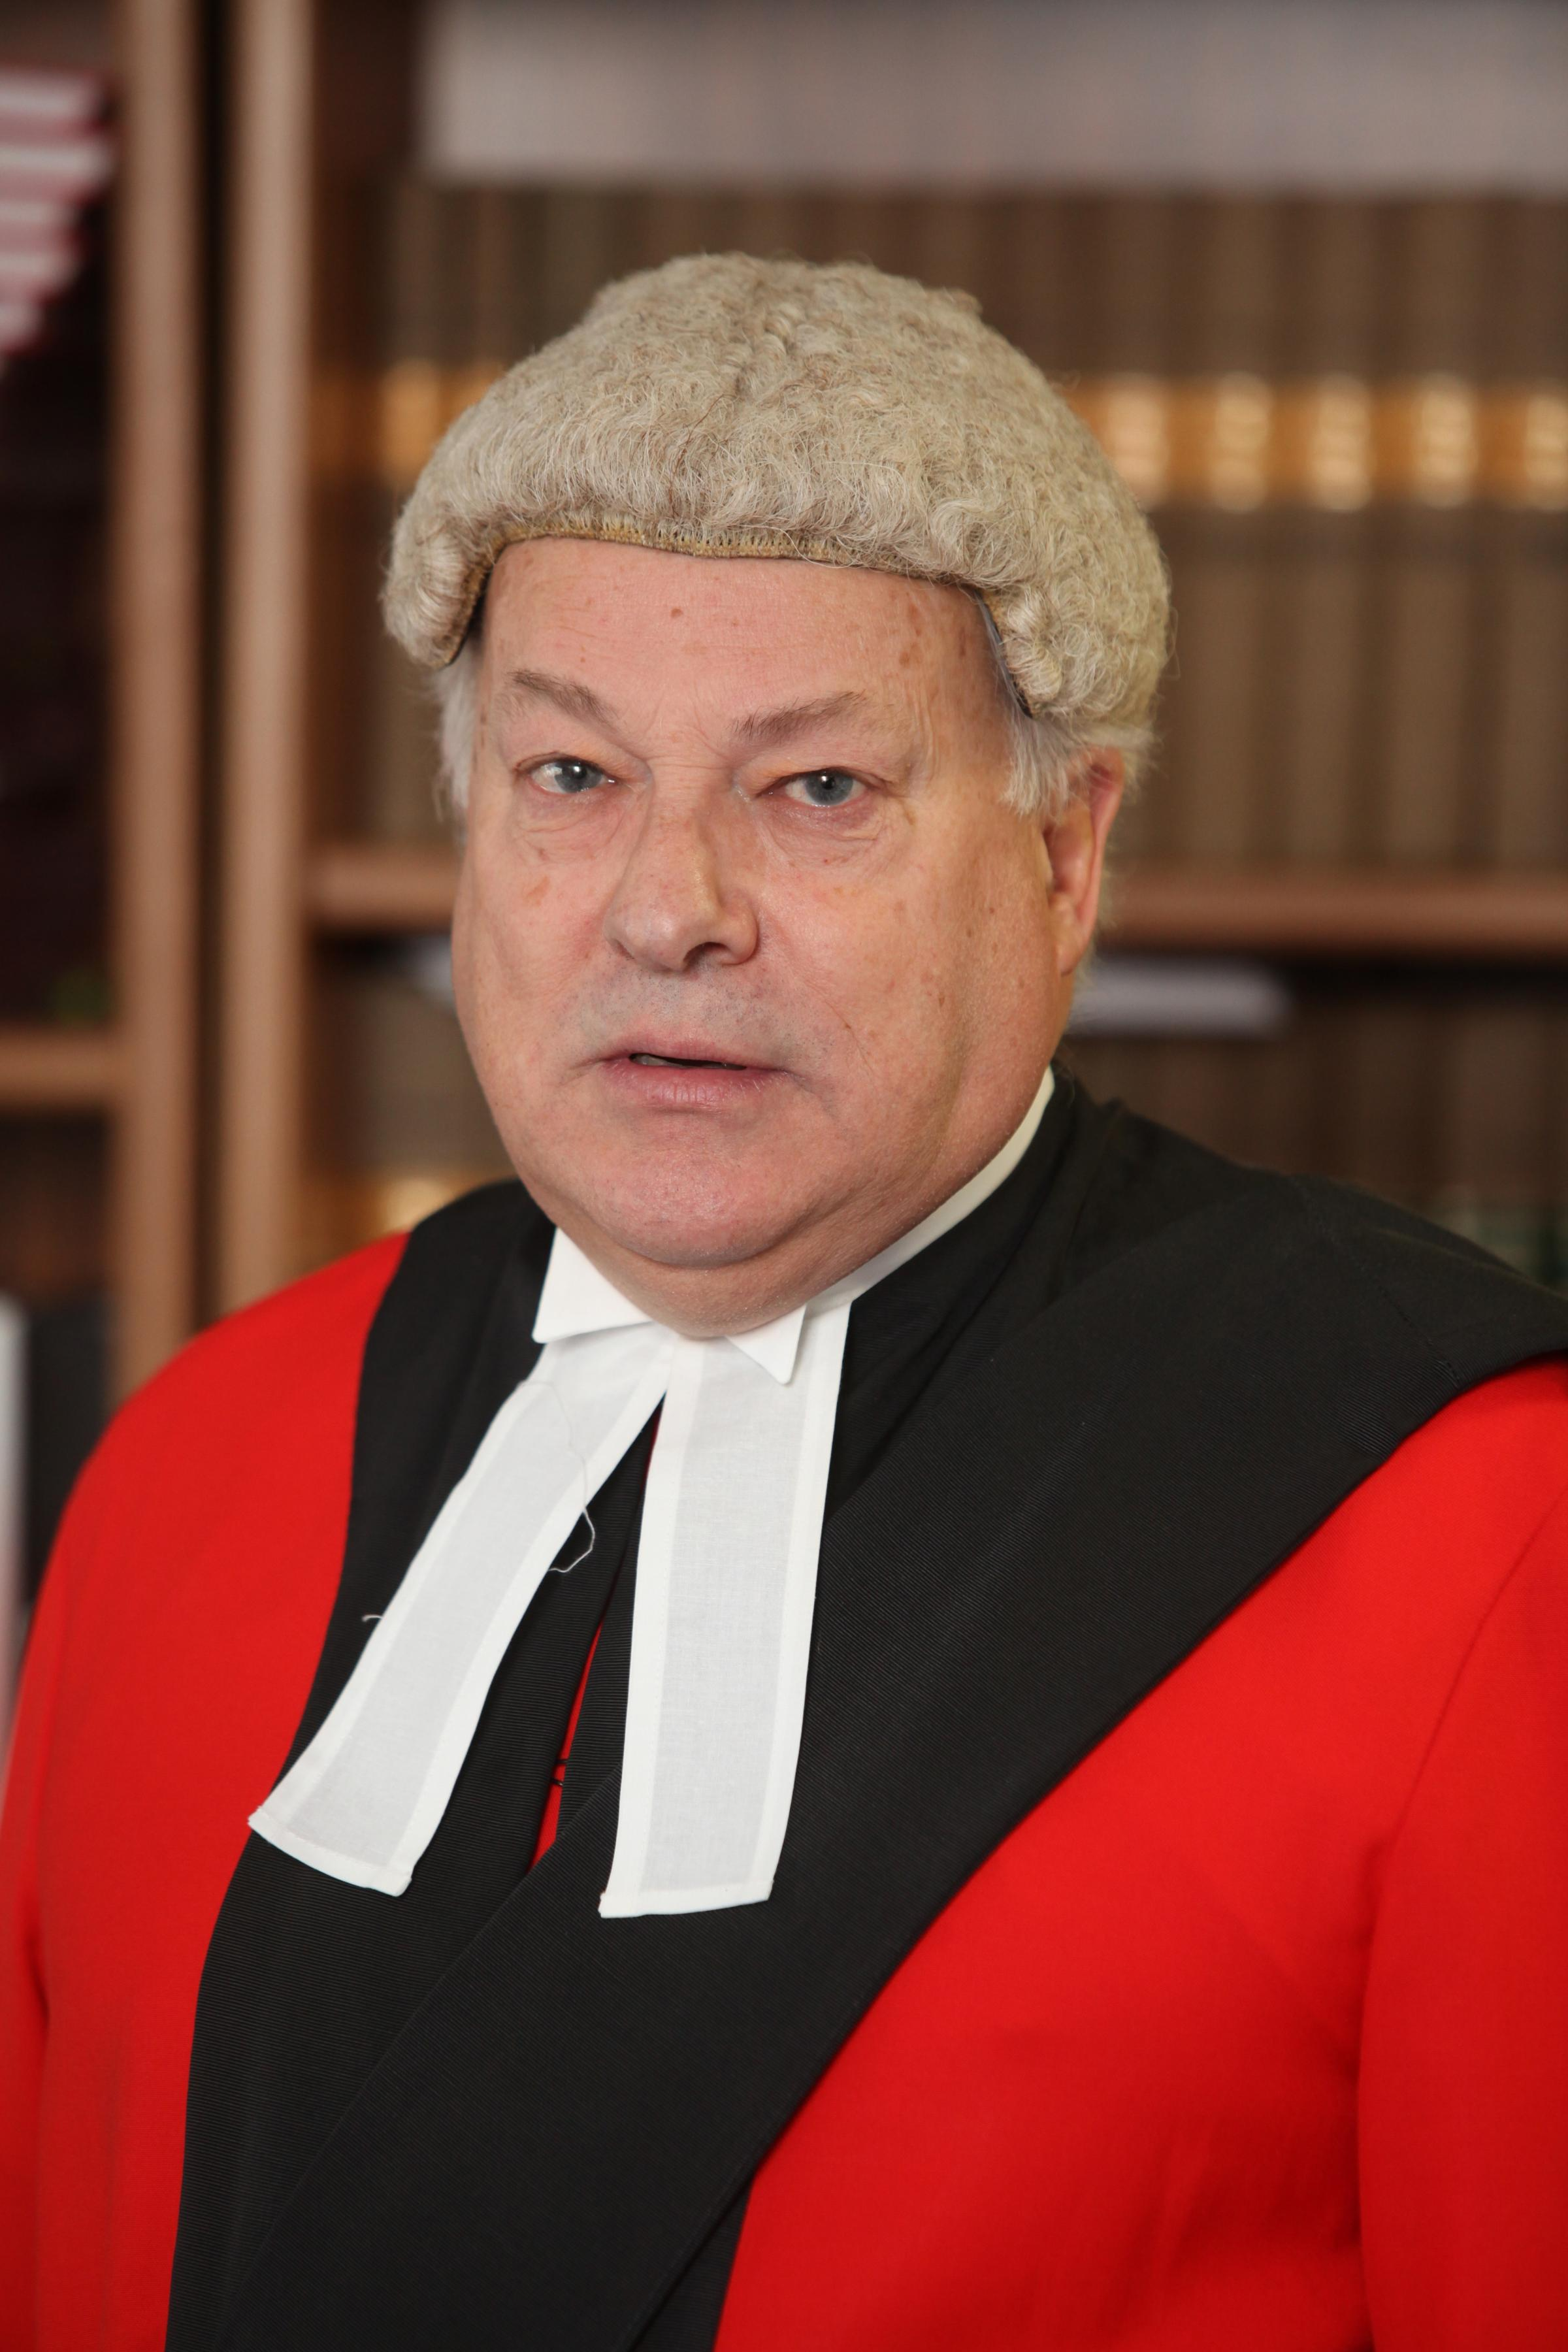 18 March 2015 - Red Judge, Judge Keith Cutler the top judge at Winchester Crown Court.